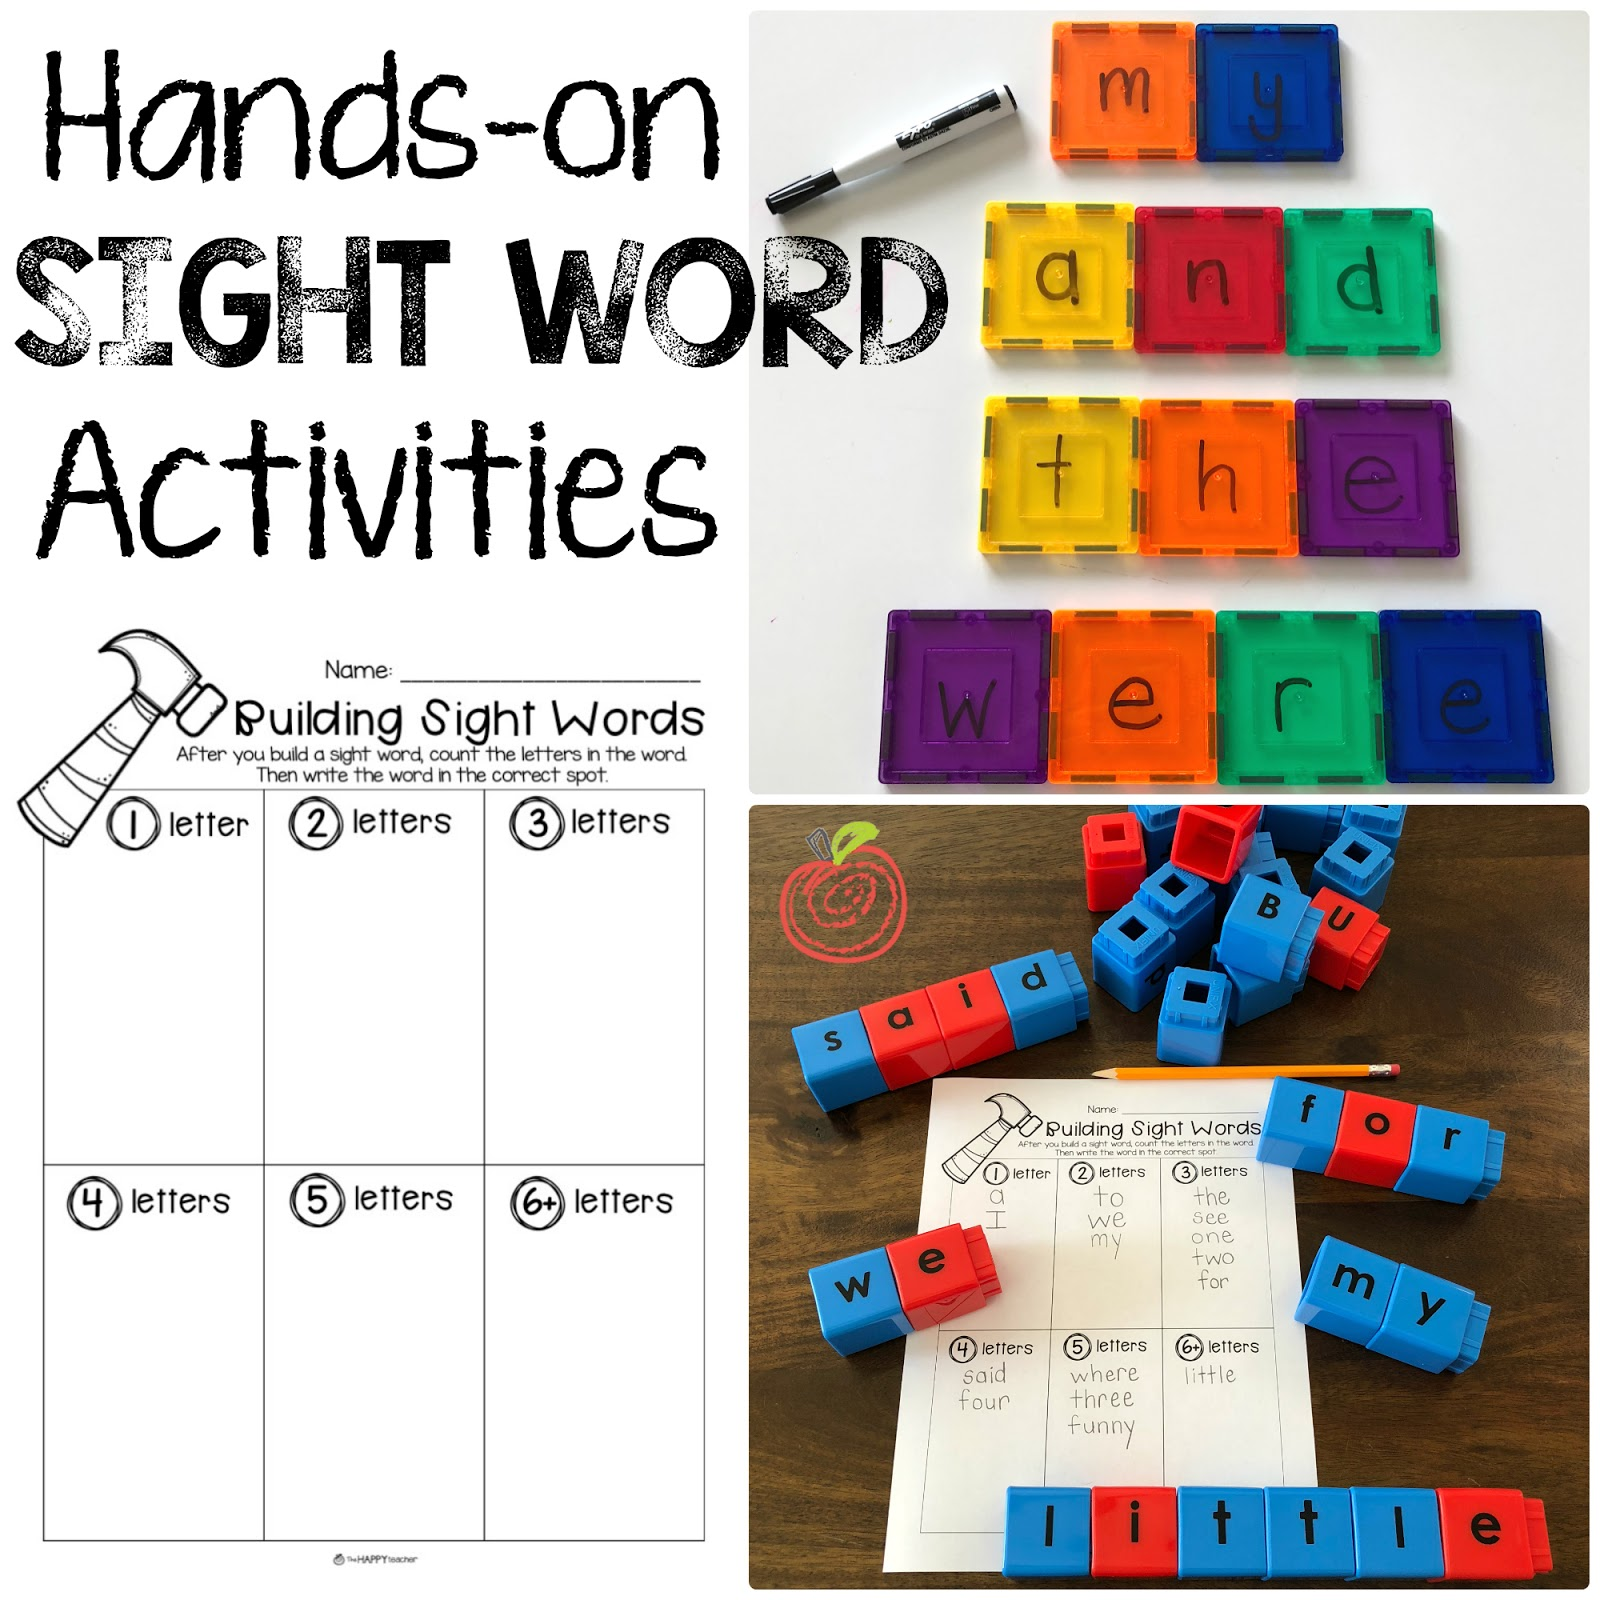 Get unifix blocks for $10 dollars in amazon for more educational activities please subscribe! Building Sight Words Activities And Printables Thehappyteacher